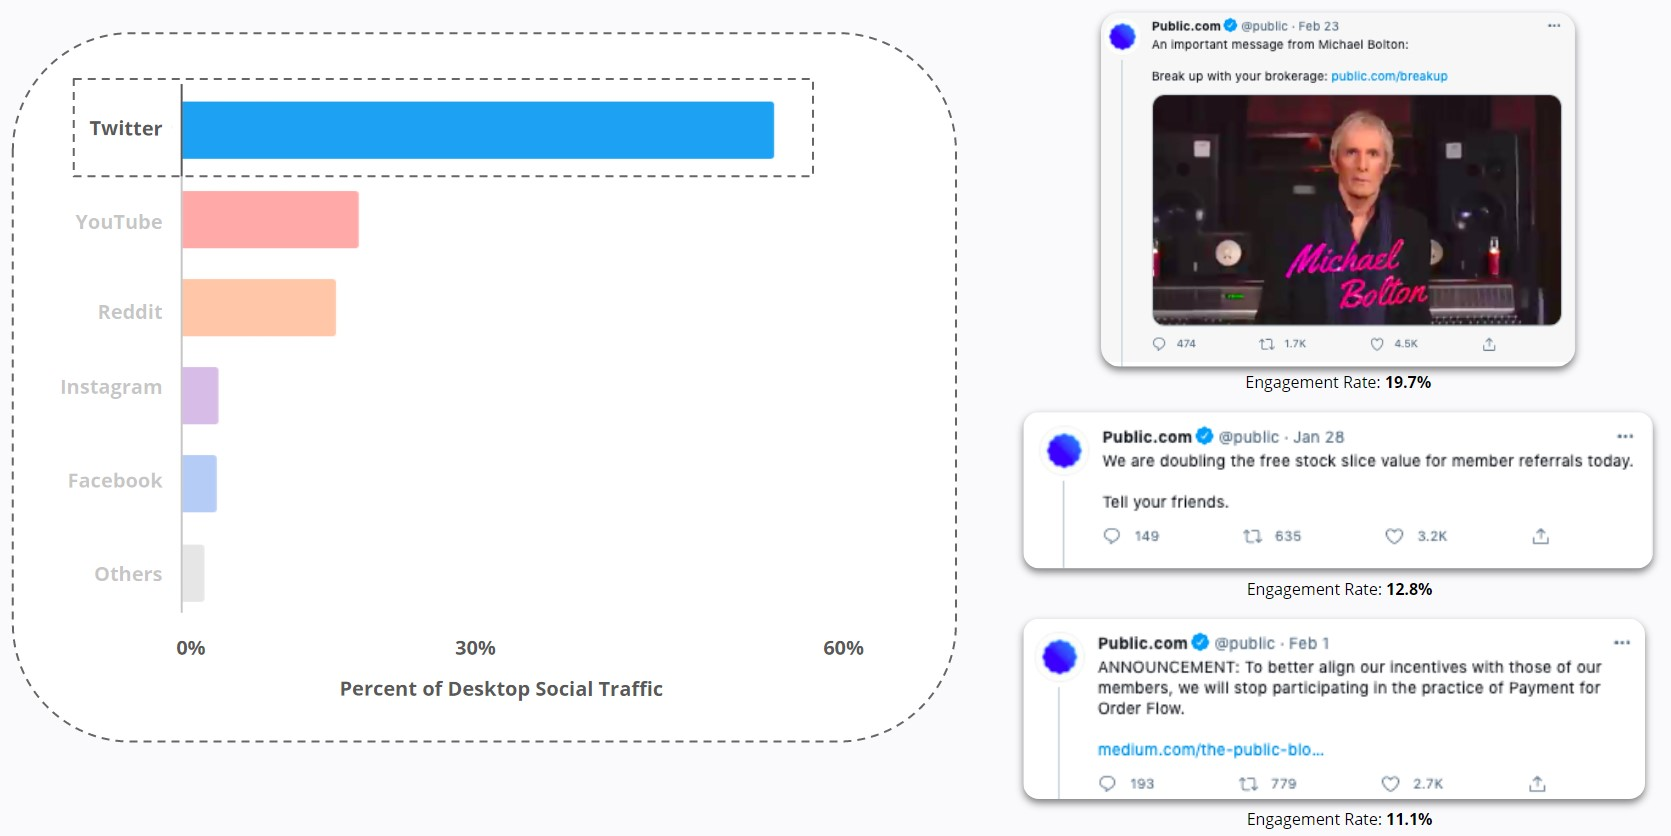 Twitter drove the majority of Public's desktop social traffic from January to February 2021